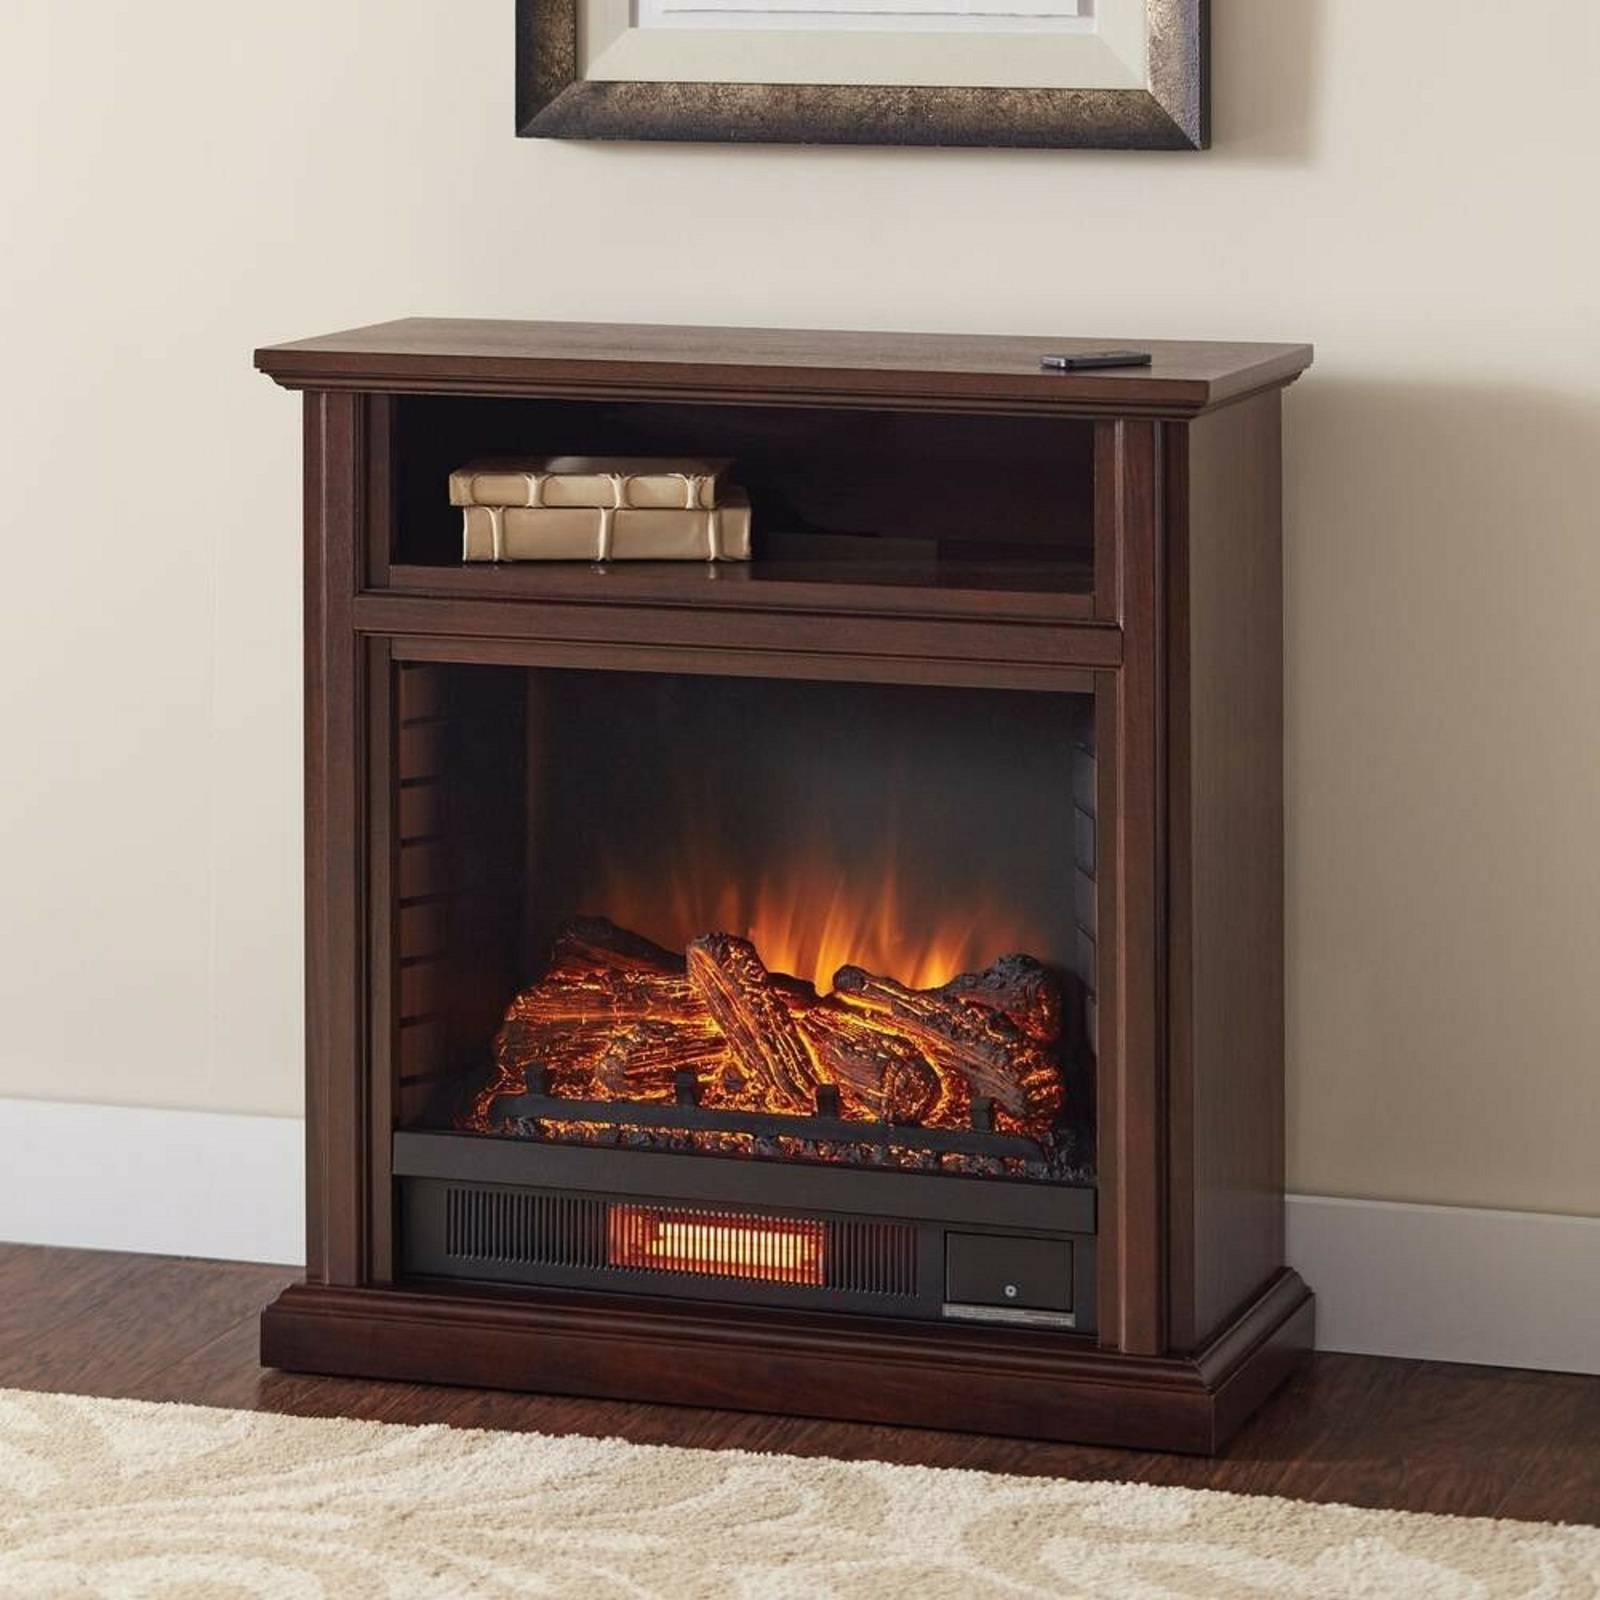 "TV Stand Storage with Electric Fireplace Infrared for TV's up to 31"" Room Cherry"